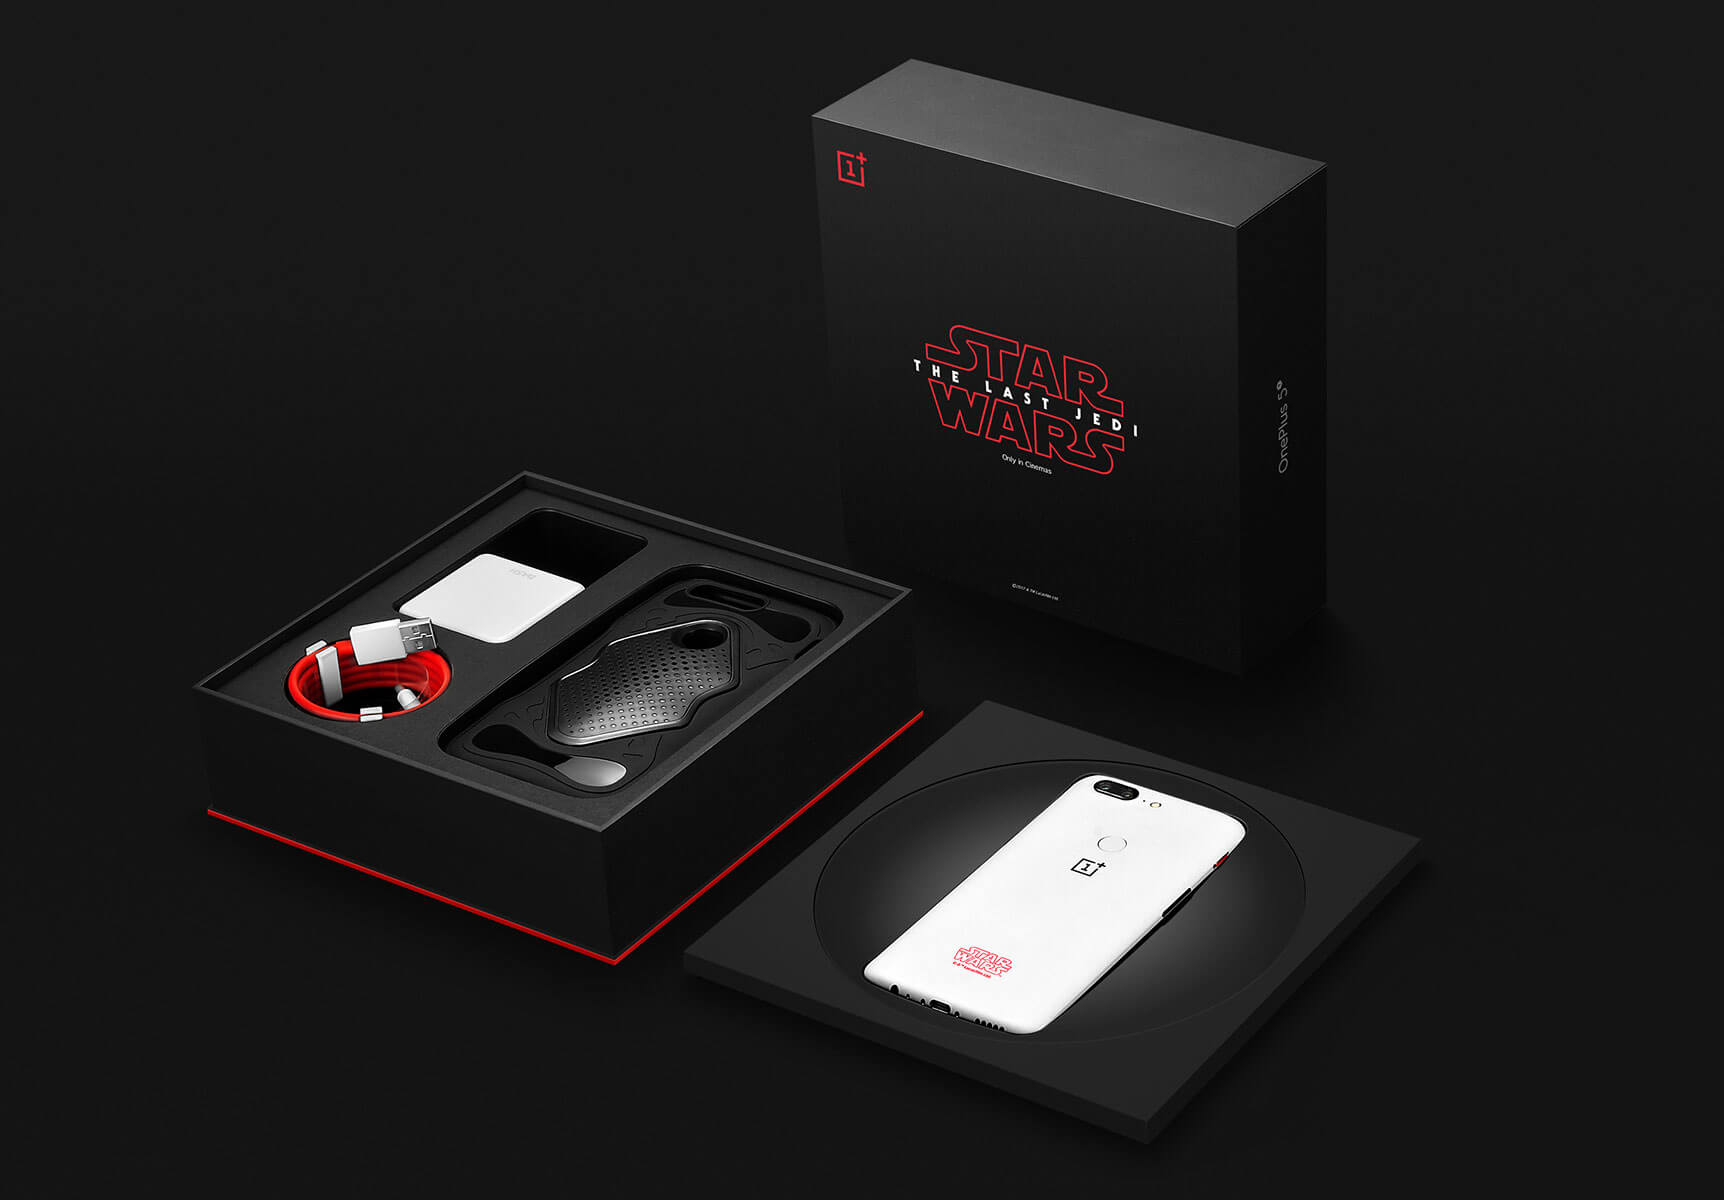 oneplus5t_star_wars_edition_smartphone_6